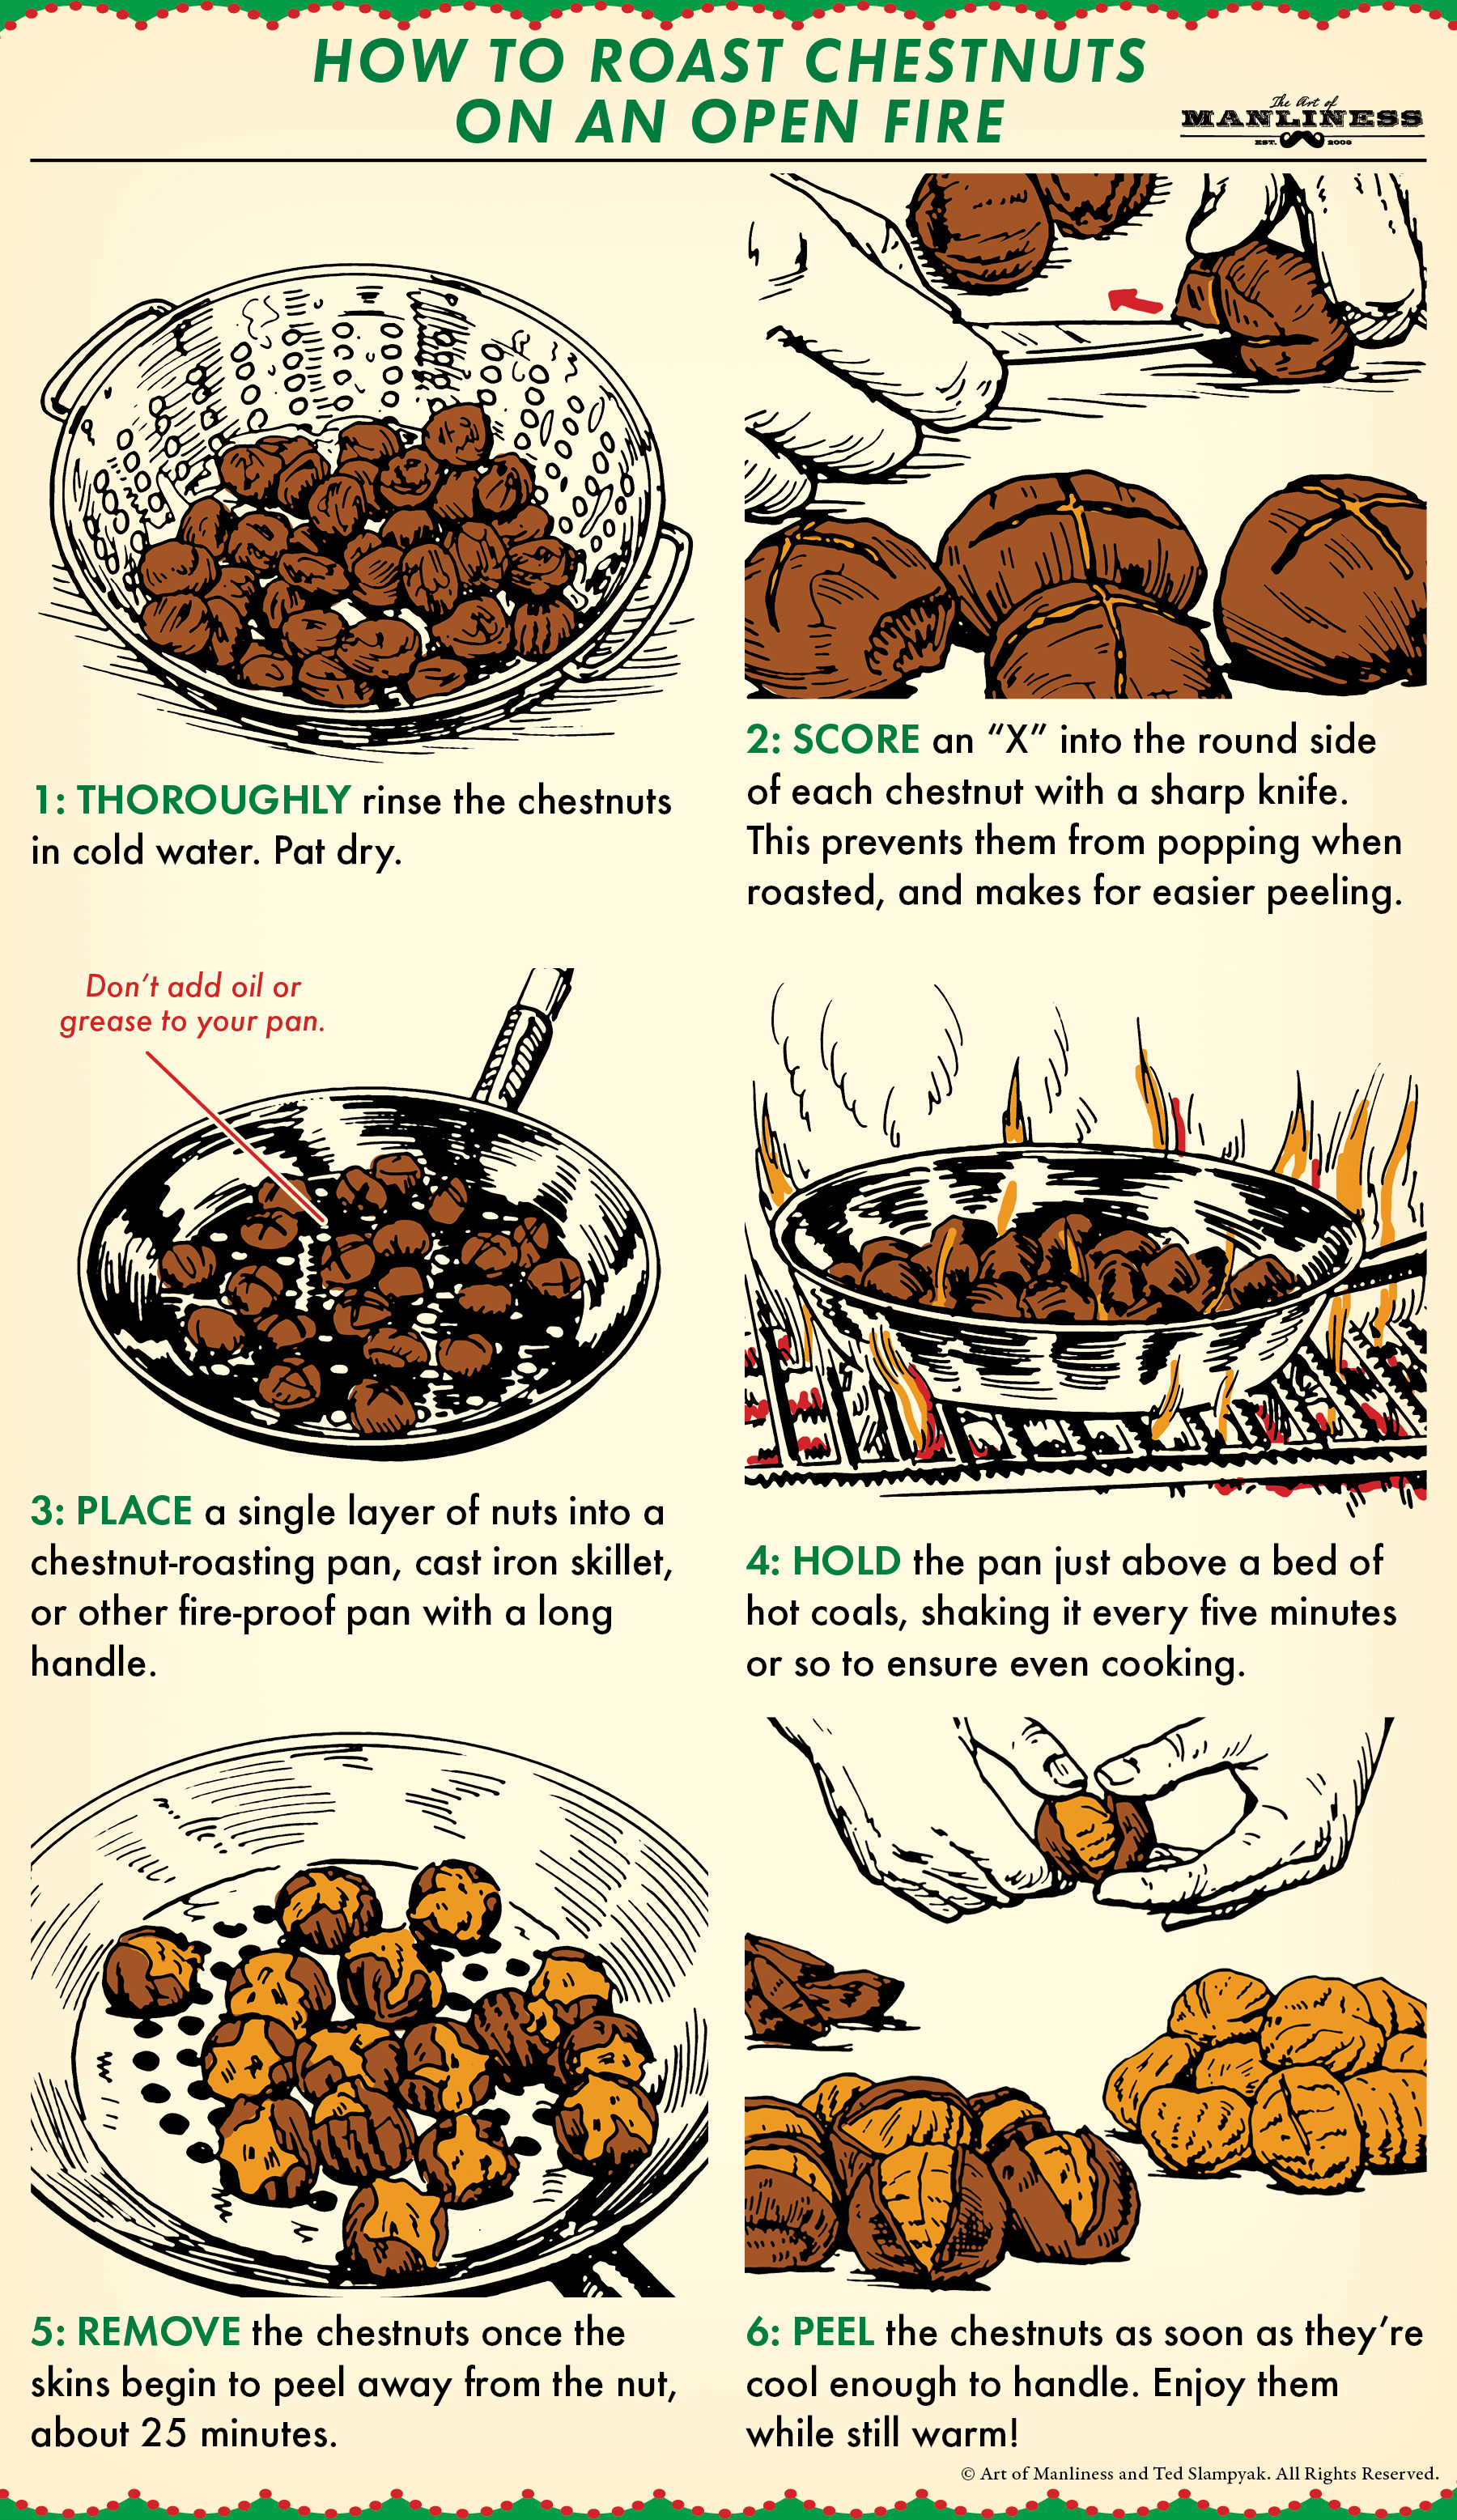 Illustration guide of how to roast chestnuts on a fire.